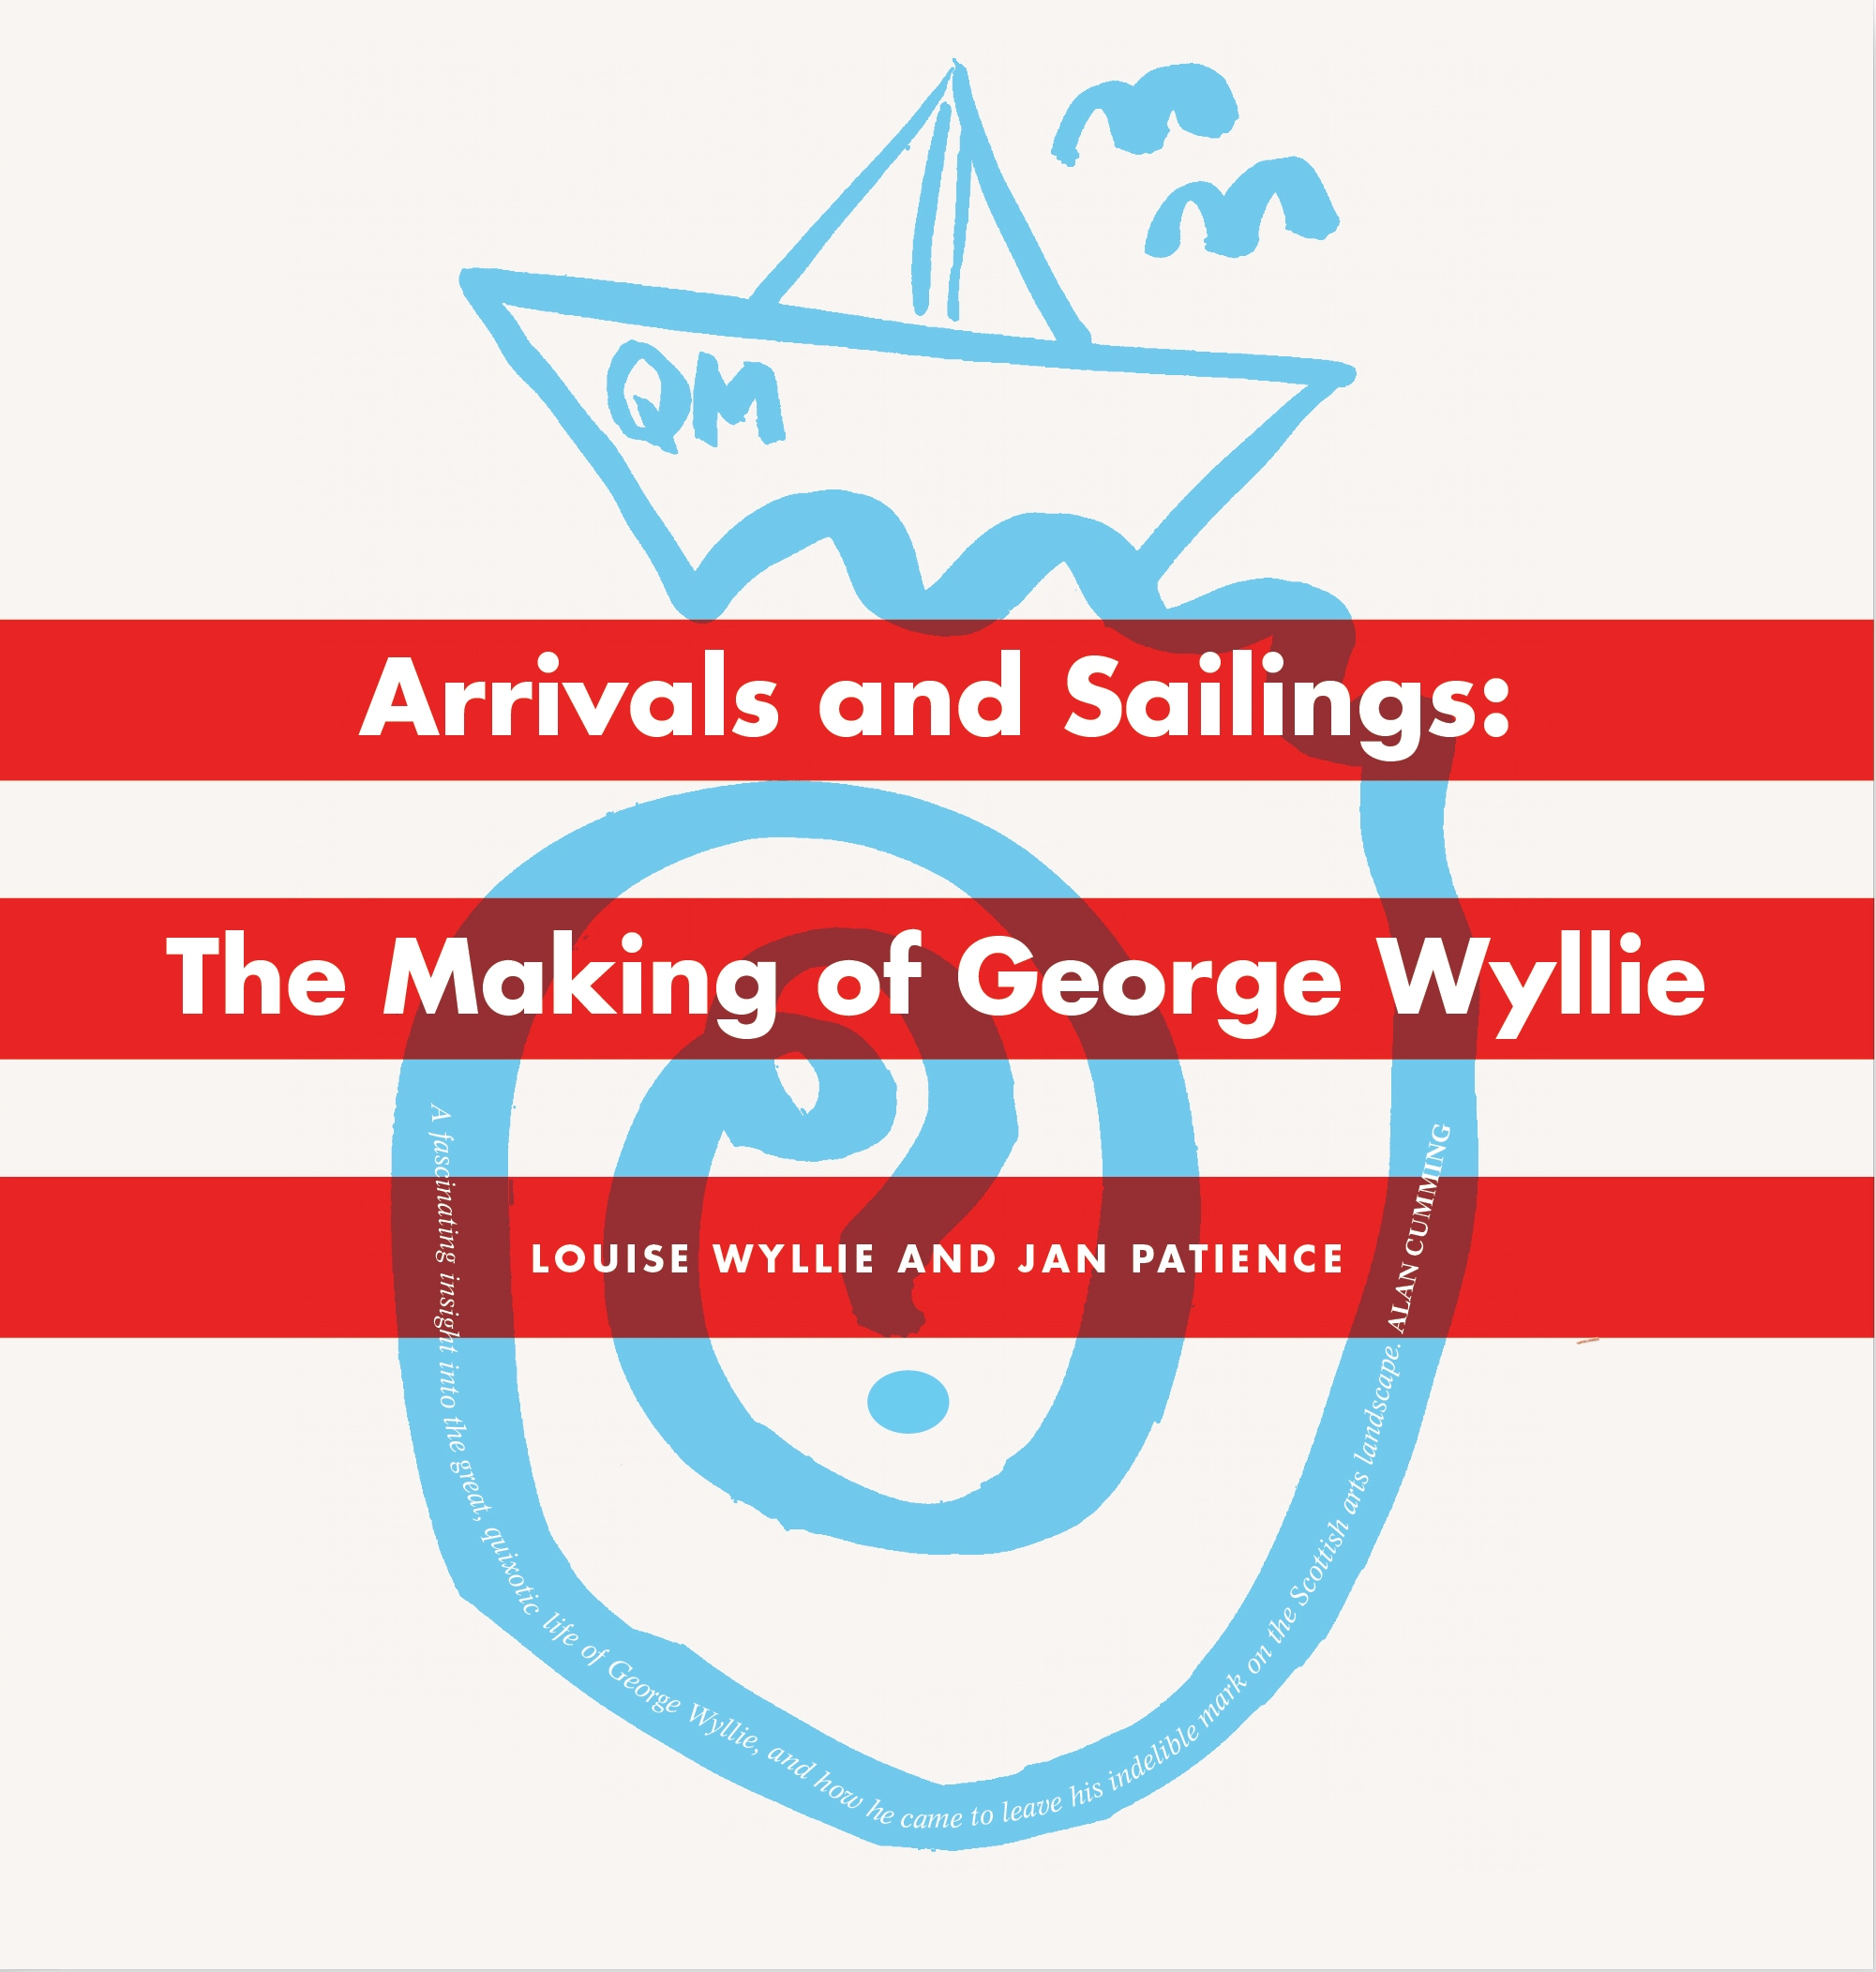 Arrivals and Sailings: The Making of George Wyllie